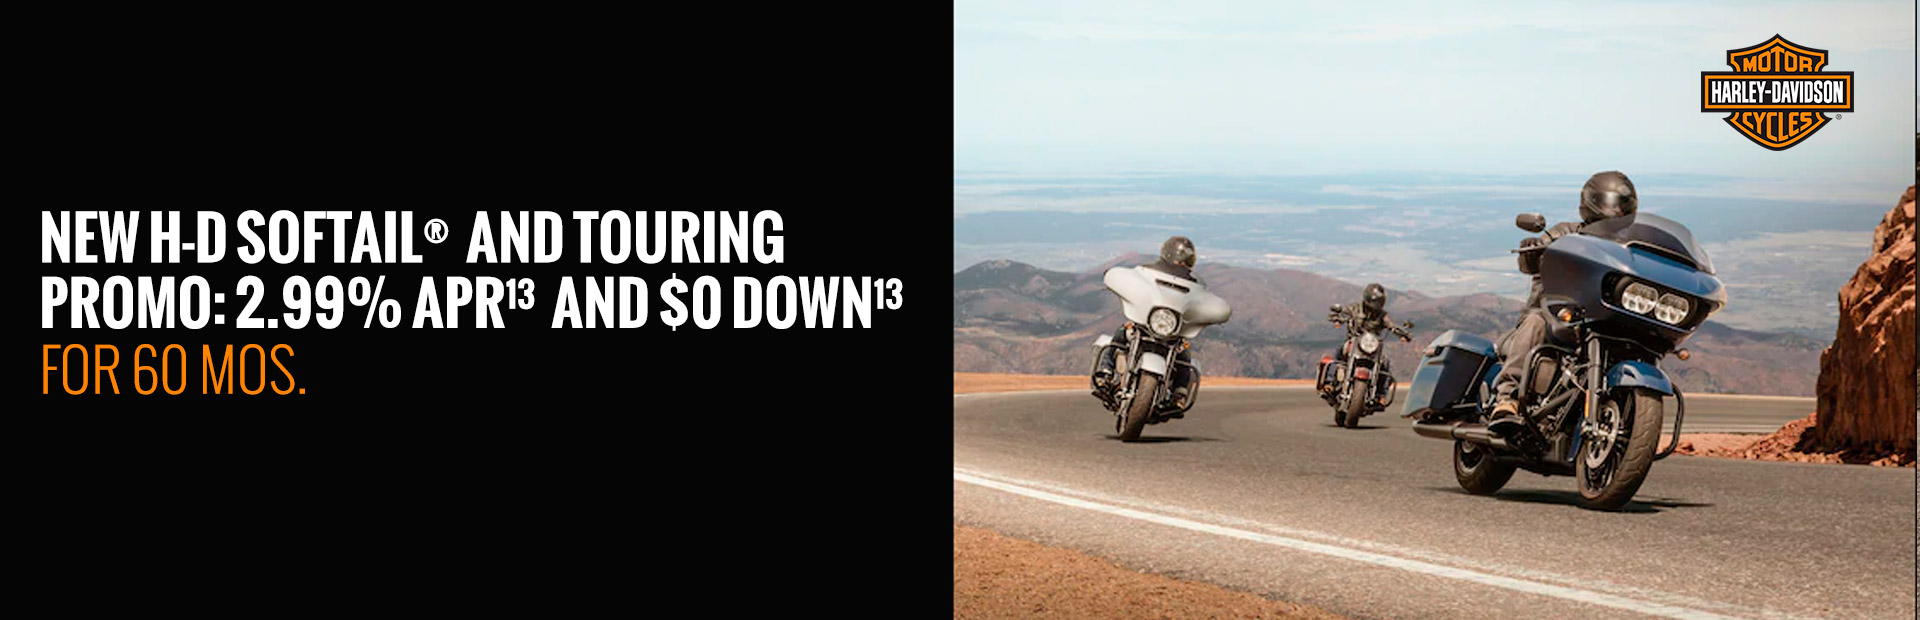 Harley-Davidson®: 2.99% APR AND $0 DOWN FOR 60 MOS.